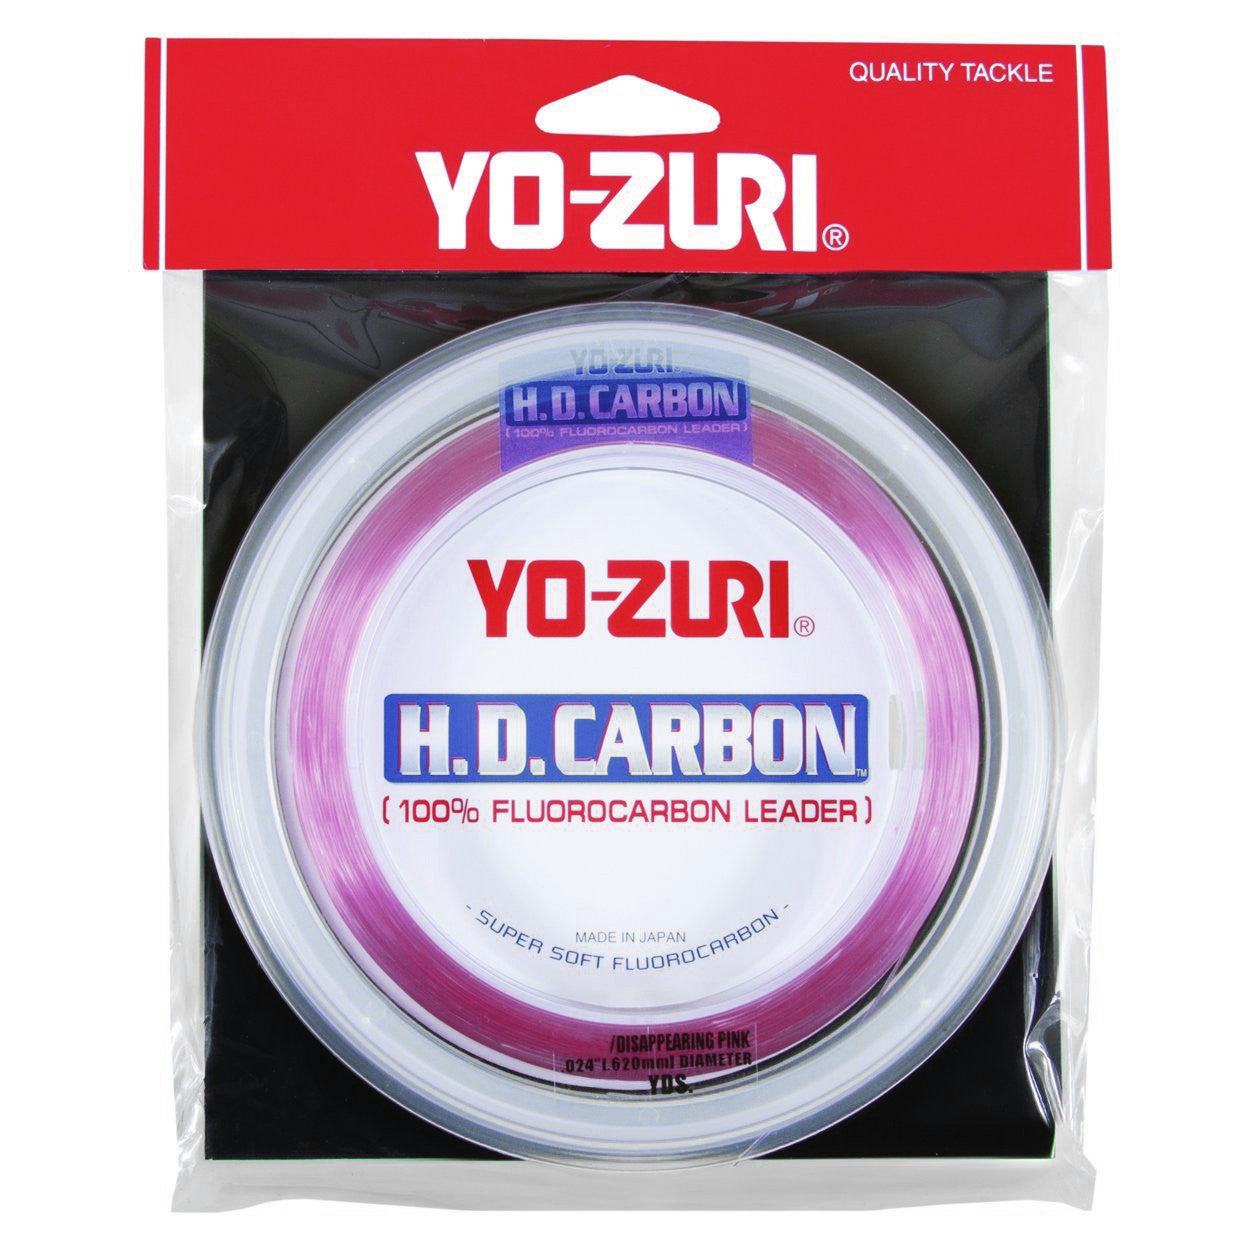 Yo-Zuri H.D Carbon Disappearing Pink 30 yards